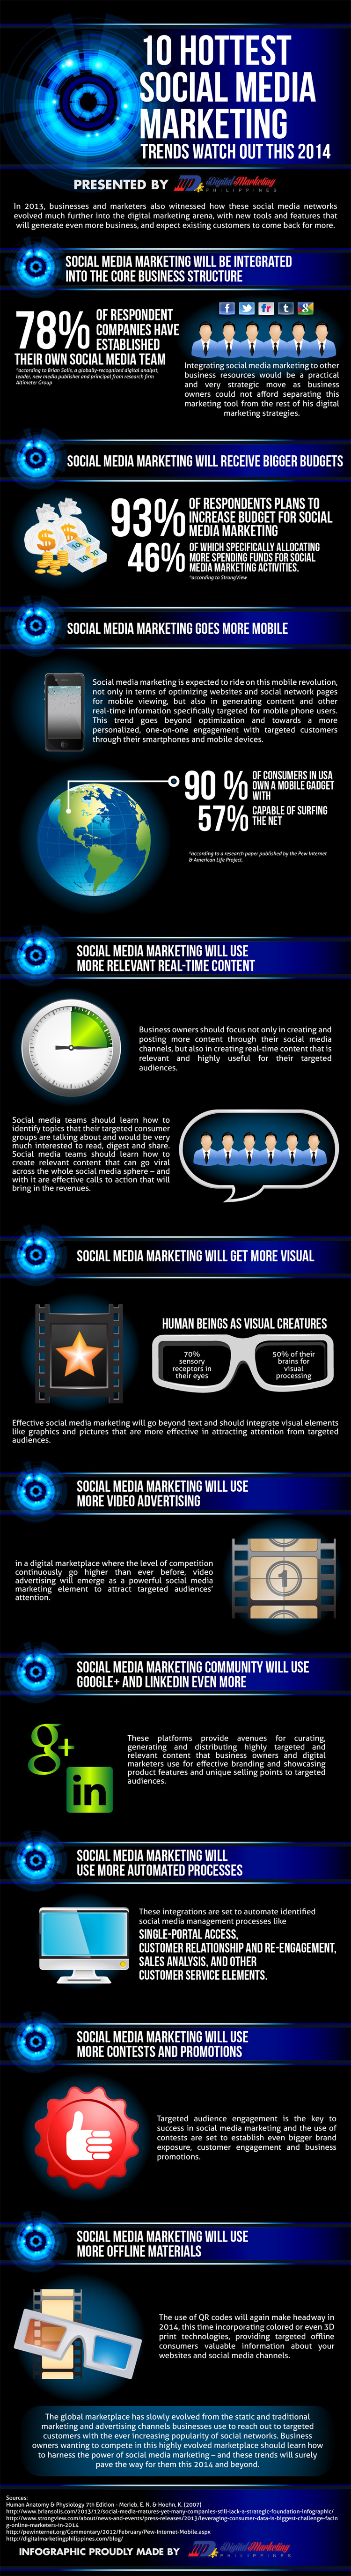 10 Hottest Social Media Marketing Trends Watch Out This 2014 (Infographic) image 10 Hottest Social Media Marketing Trends Watch Out This 2014